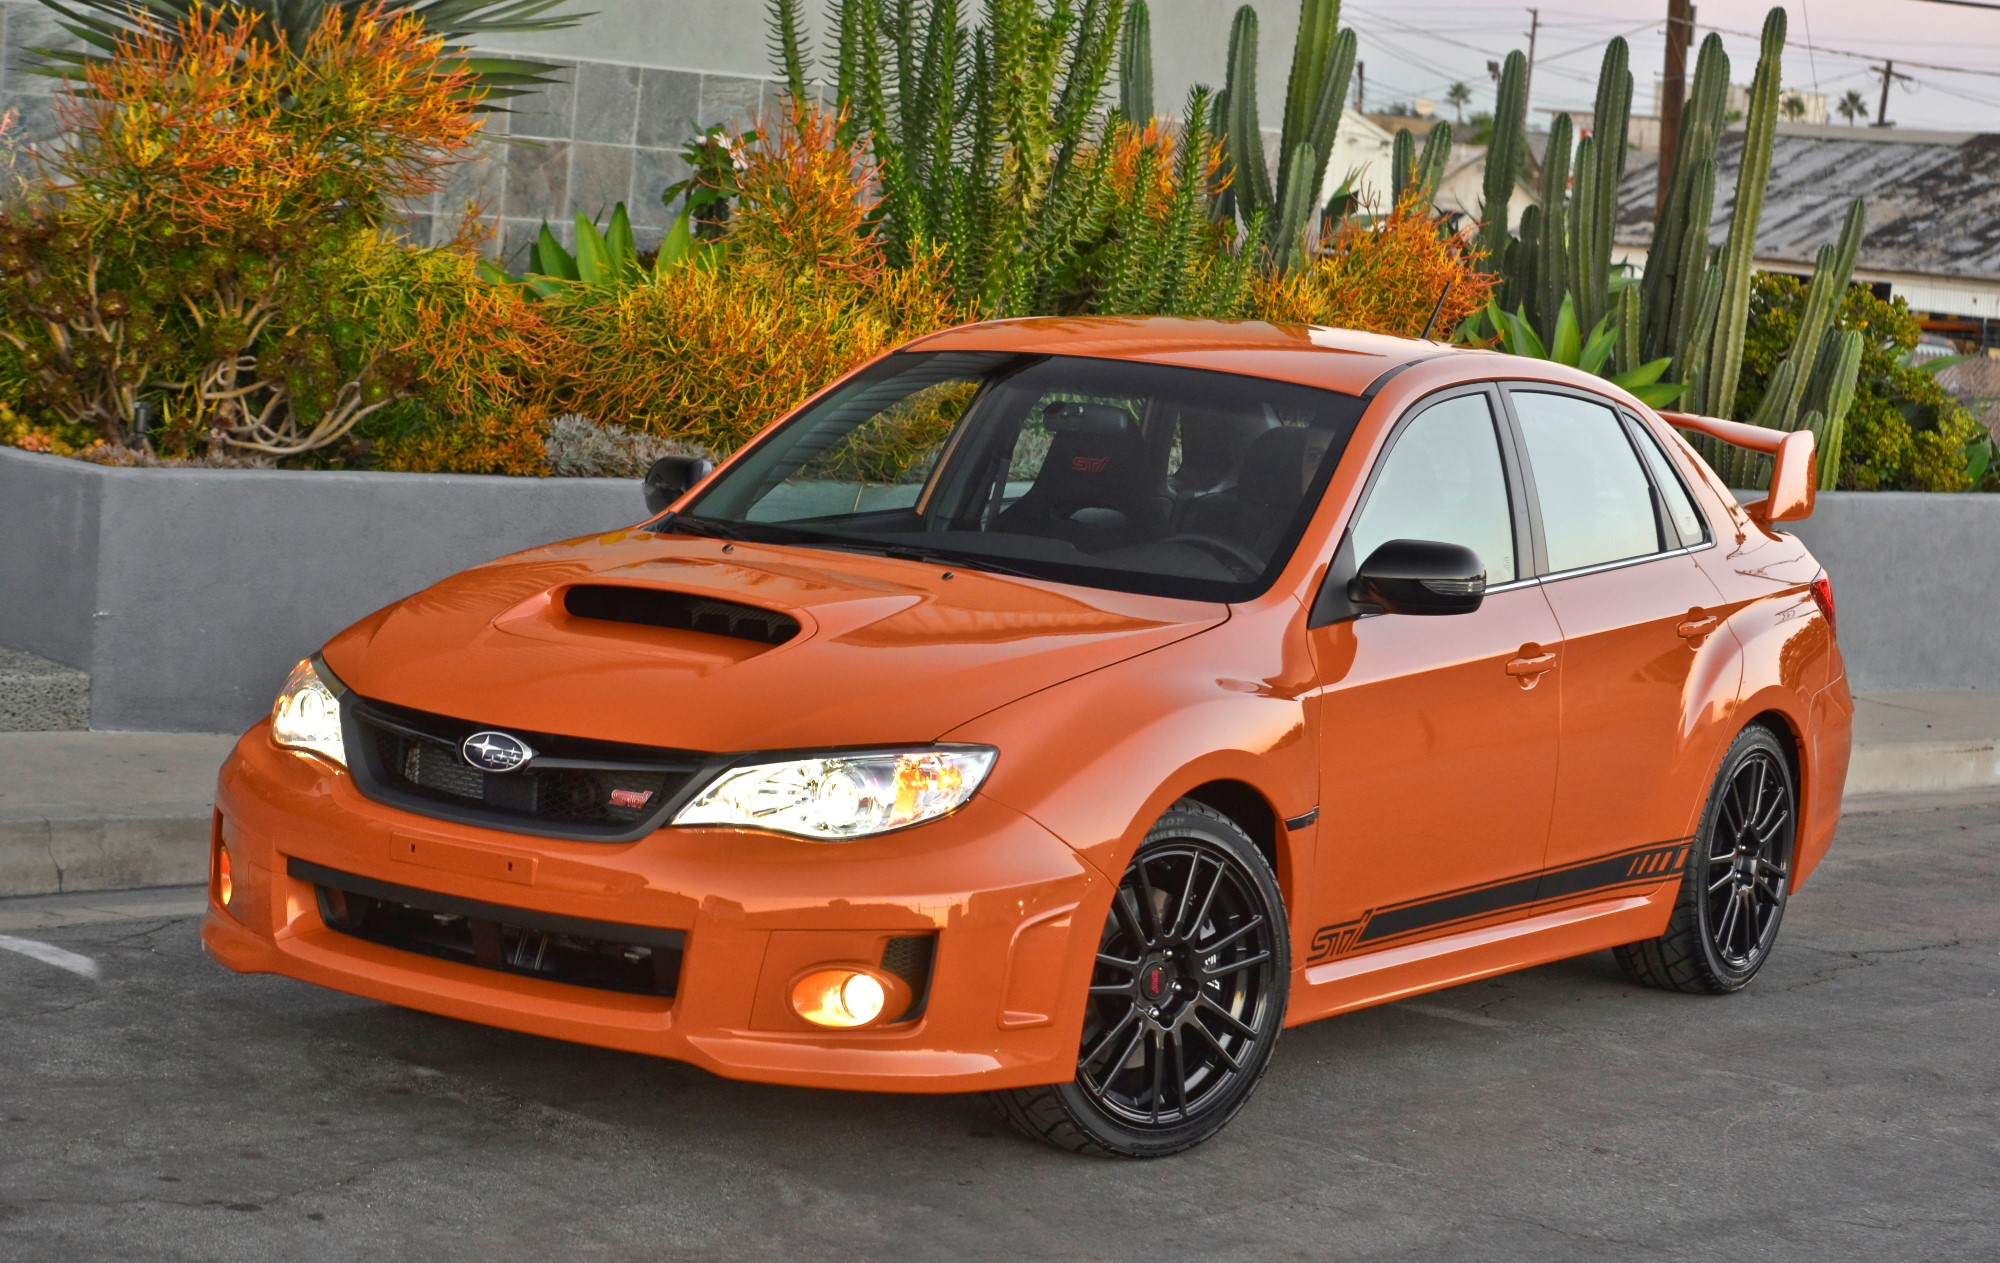 2013 Subaru Wrx Review Ratings Specs Prices And Photos